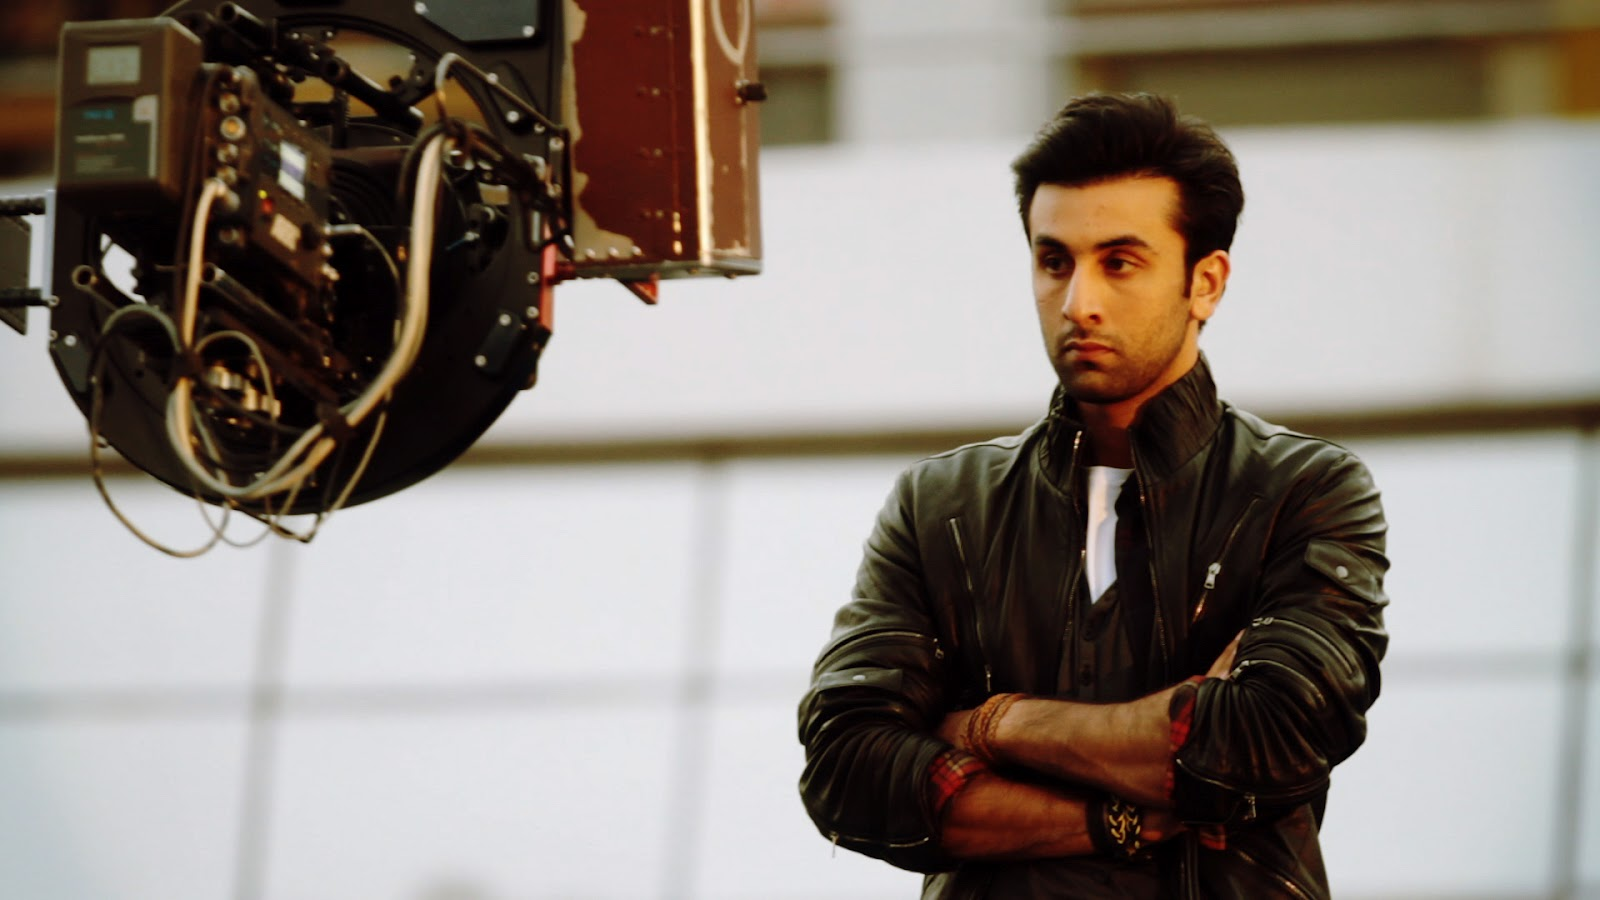 http://2.bp.blogspot.com/-CI994ATGVbw/TzvXwosbuQI/AAAAAAAAGuY/_8k60spFXMg/s1600/ranbir+kapoor+nissan+movie+star+of+india+ranbeer+new+movie.jpg